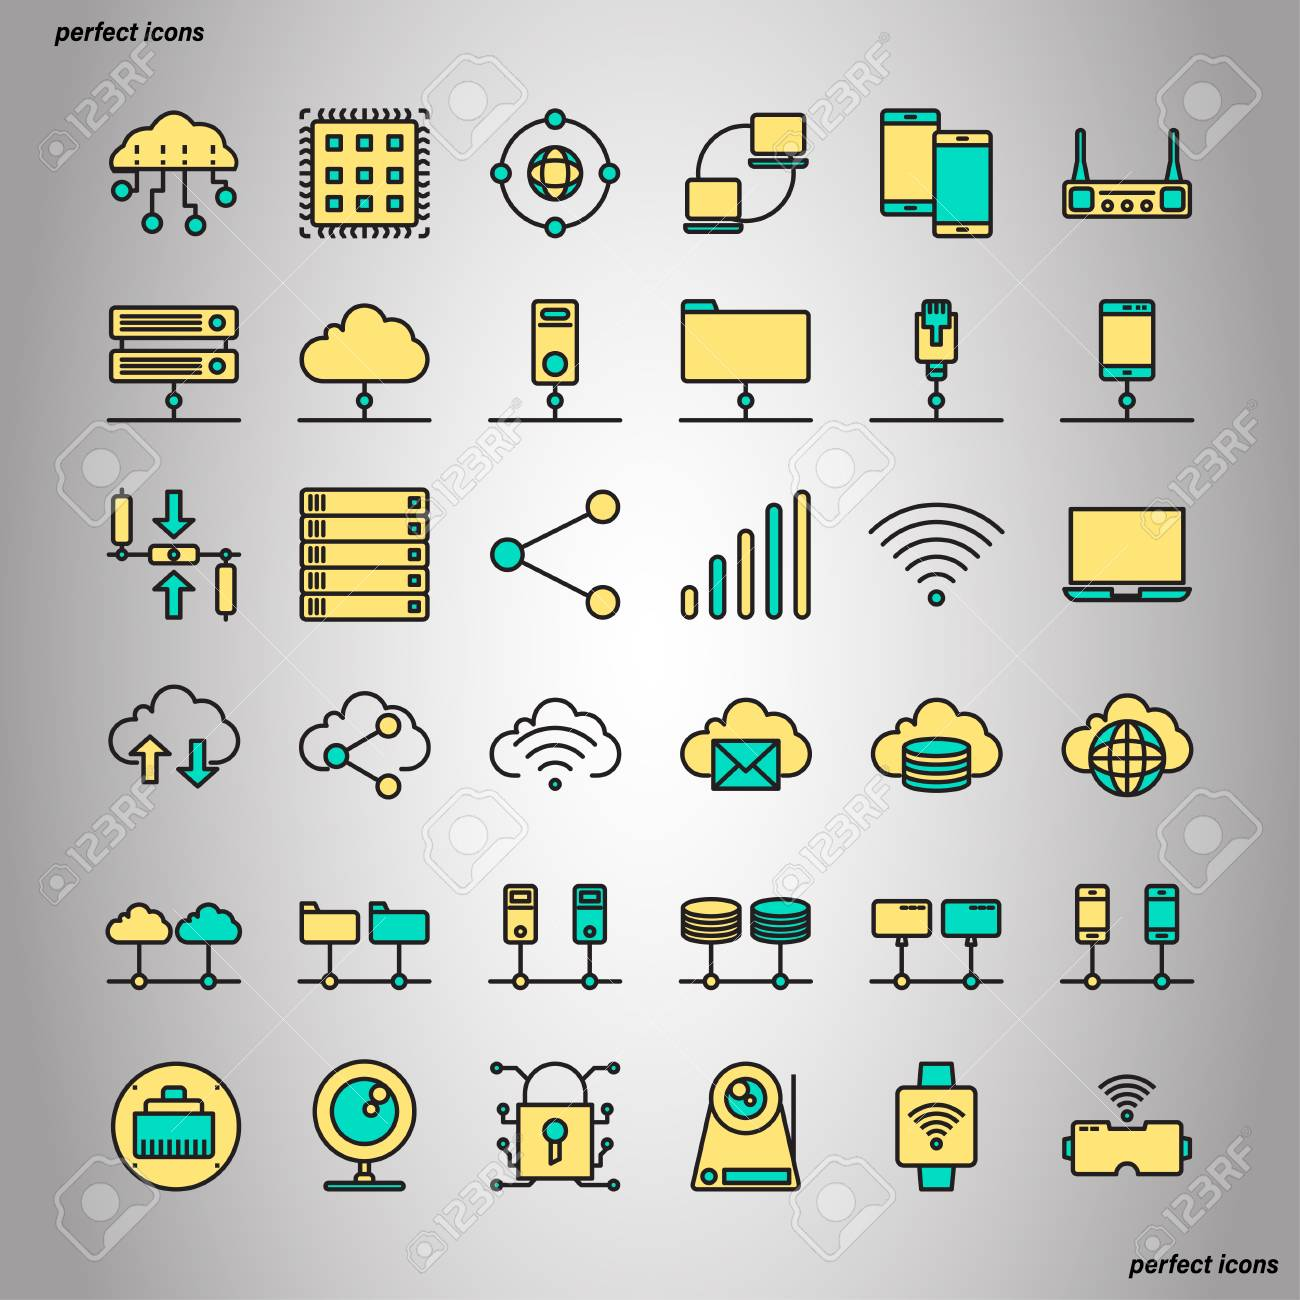 Computer Networks and Database Color Line Icons perfect pixel